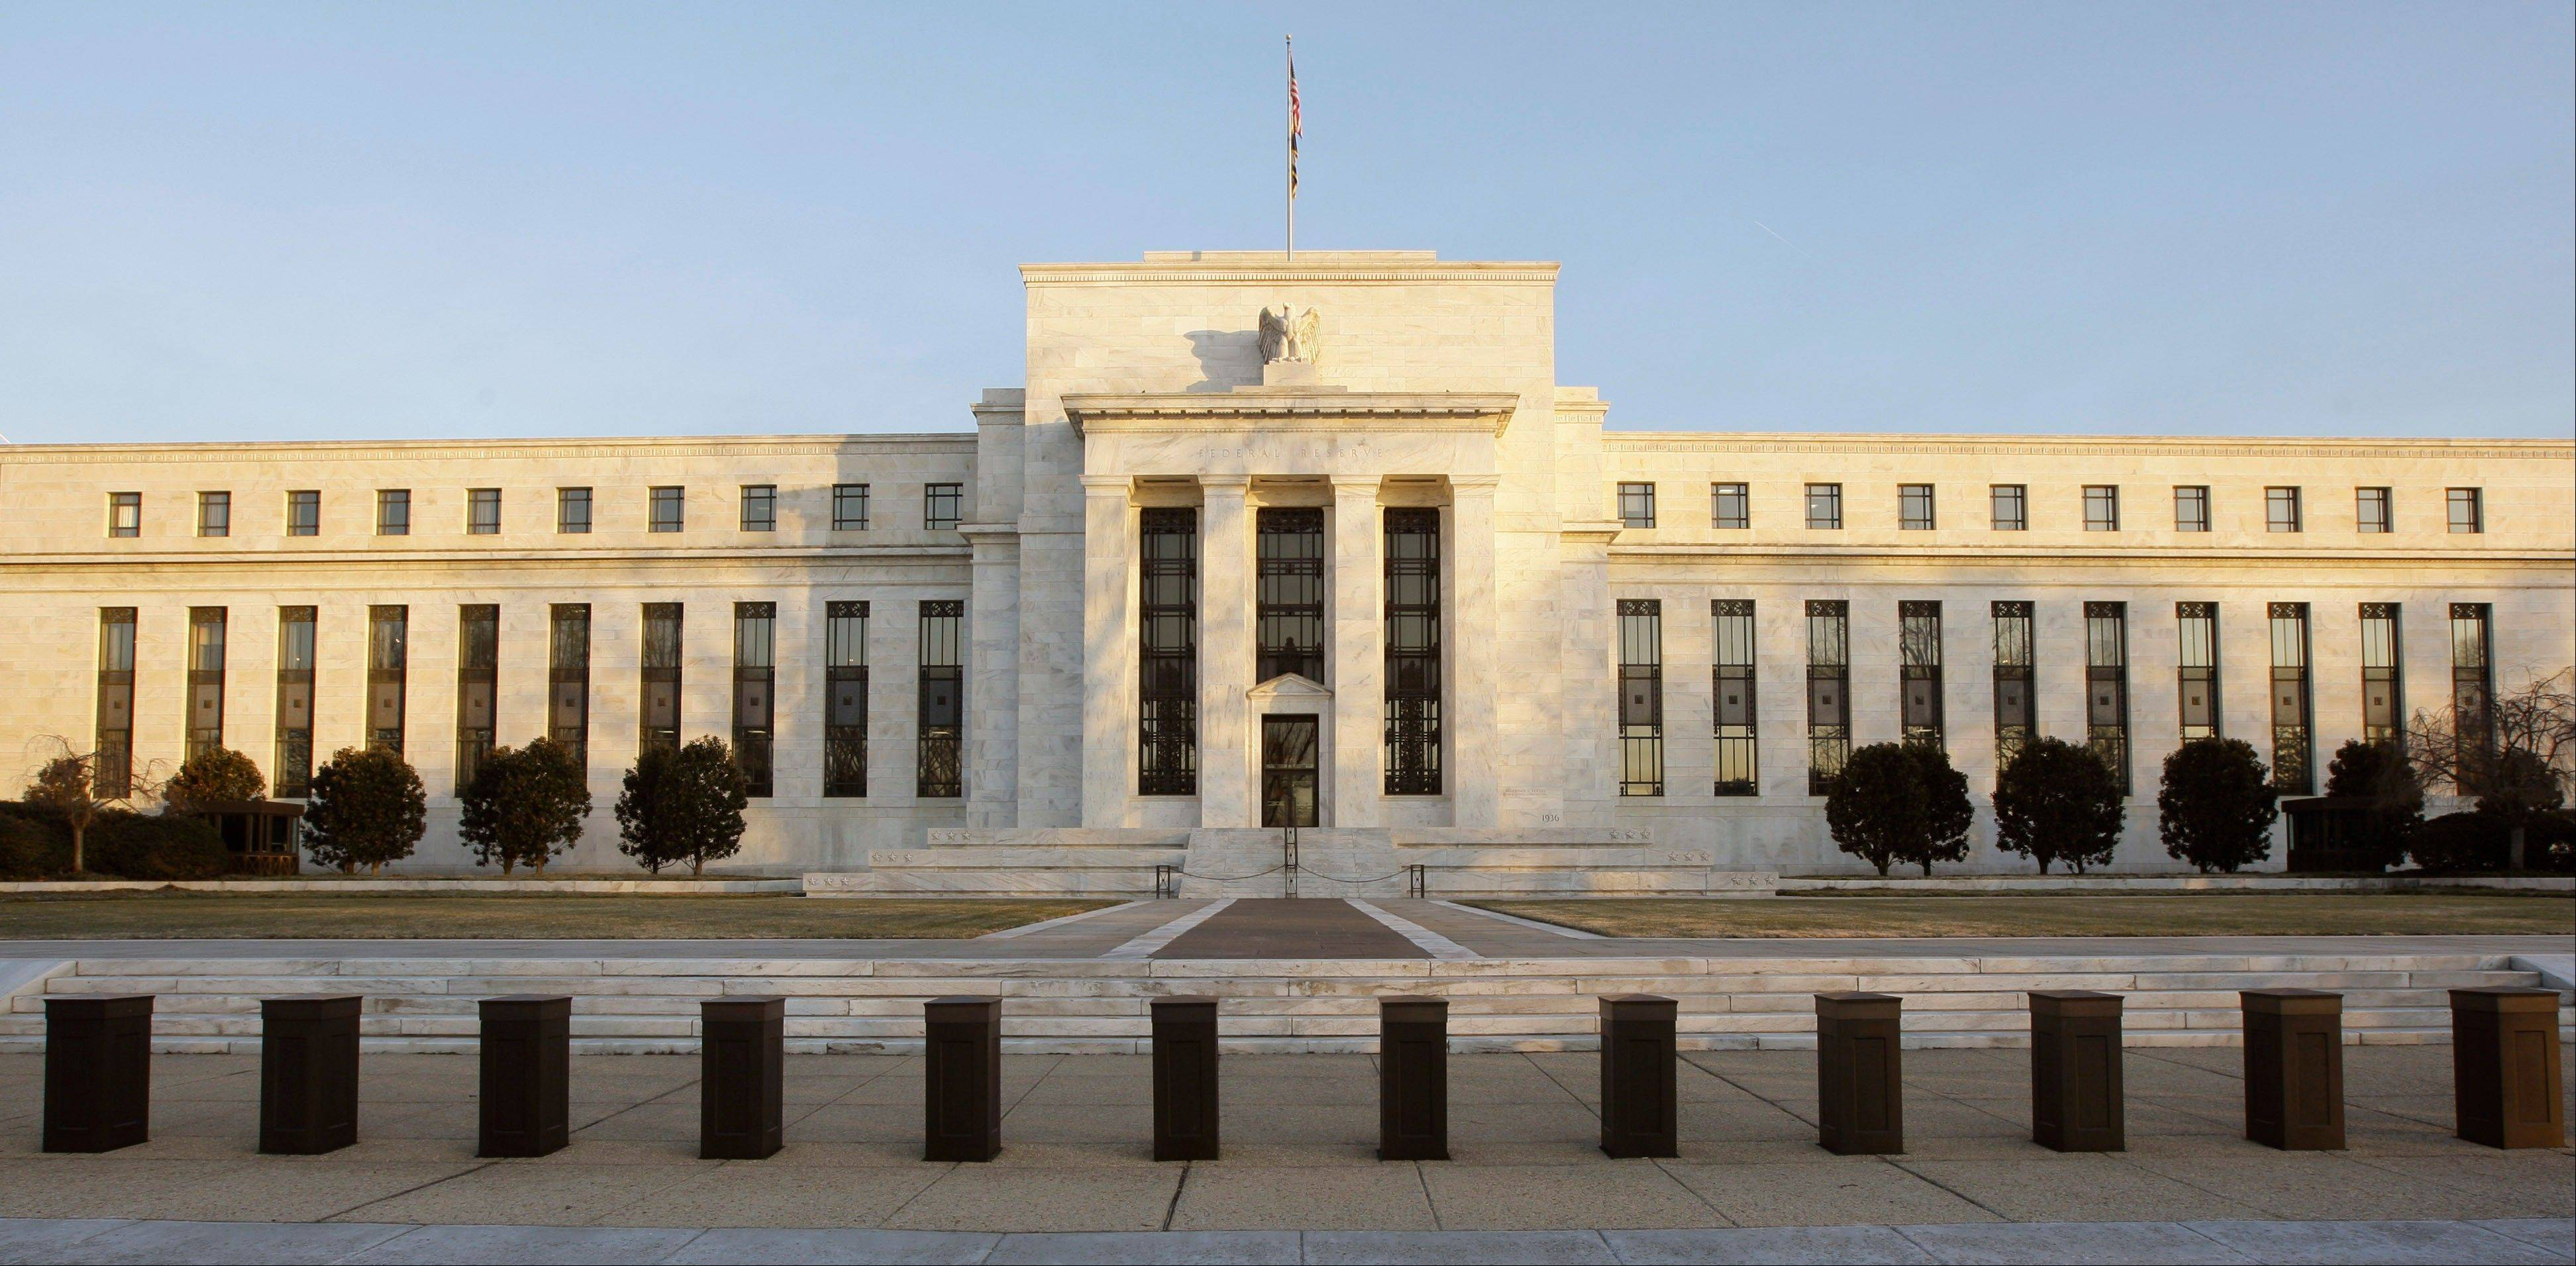 The Federal Reserve Building in Washington. Don't expect the Federal Reserve to let up in its drive to keep stimulating the economy with record-low interest rates. Not yet, anyway.